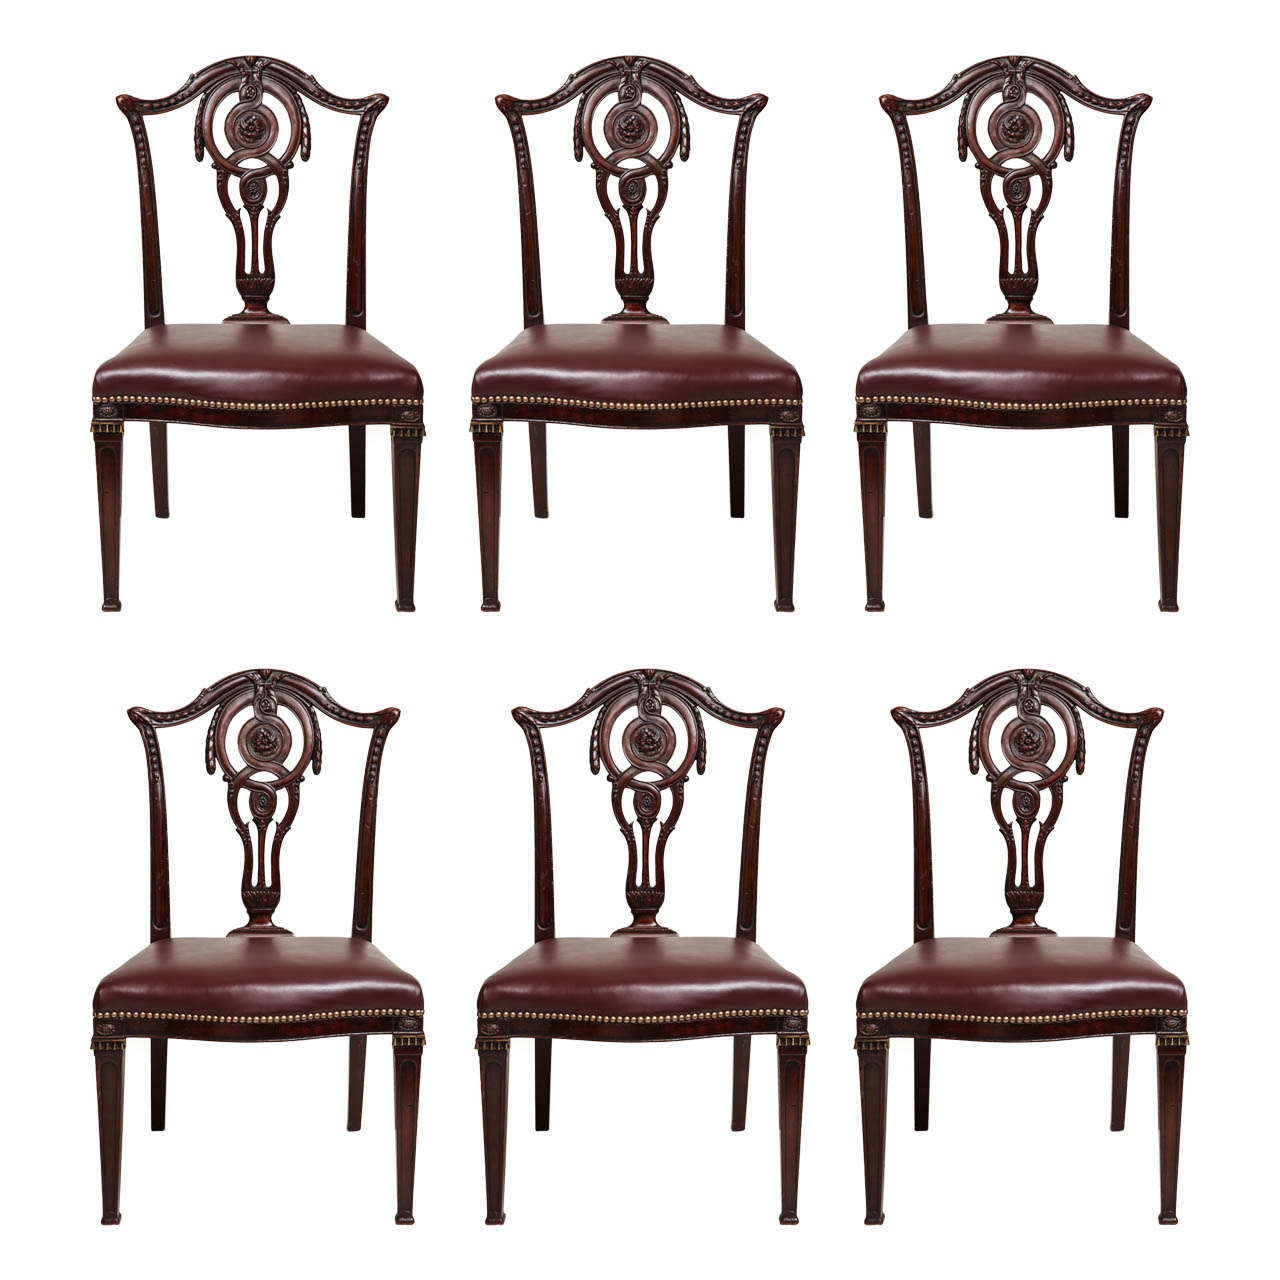 Art Nouveau Dining Room Chairs